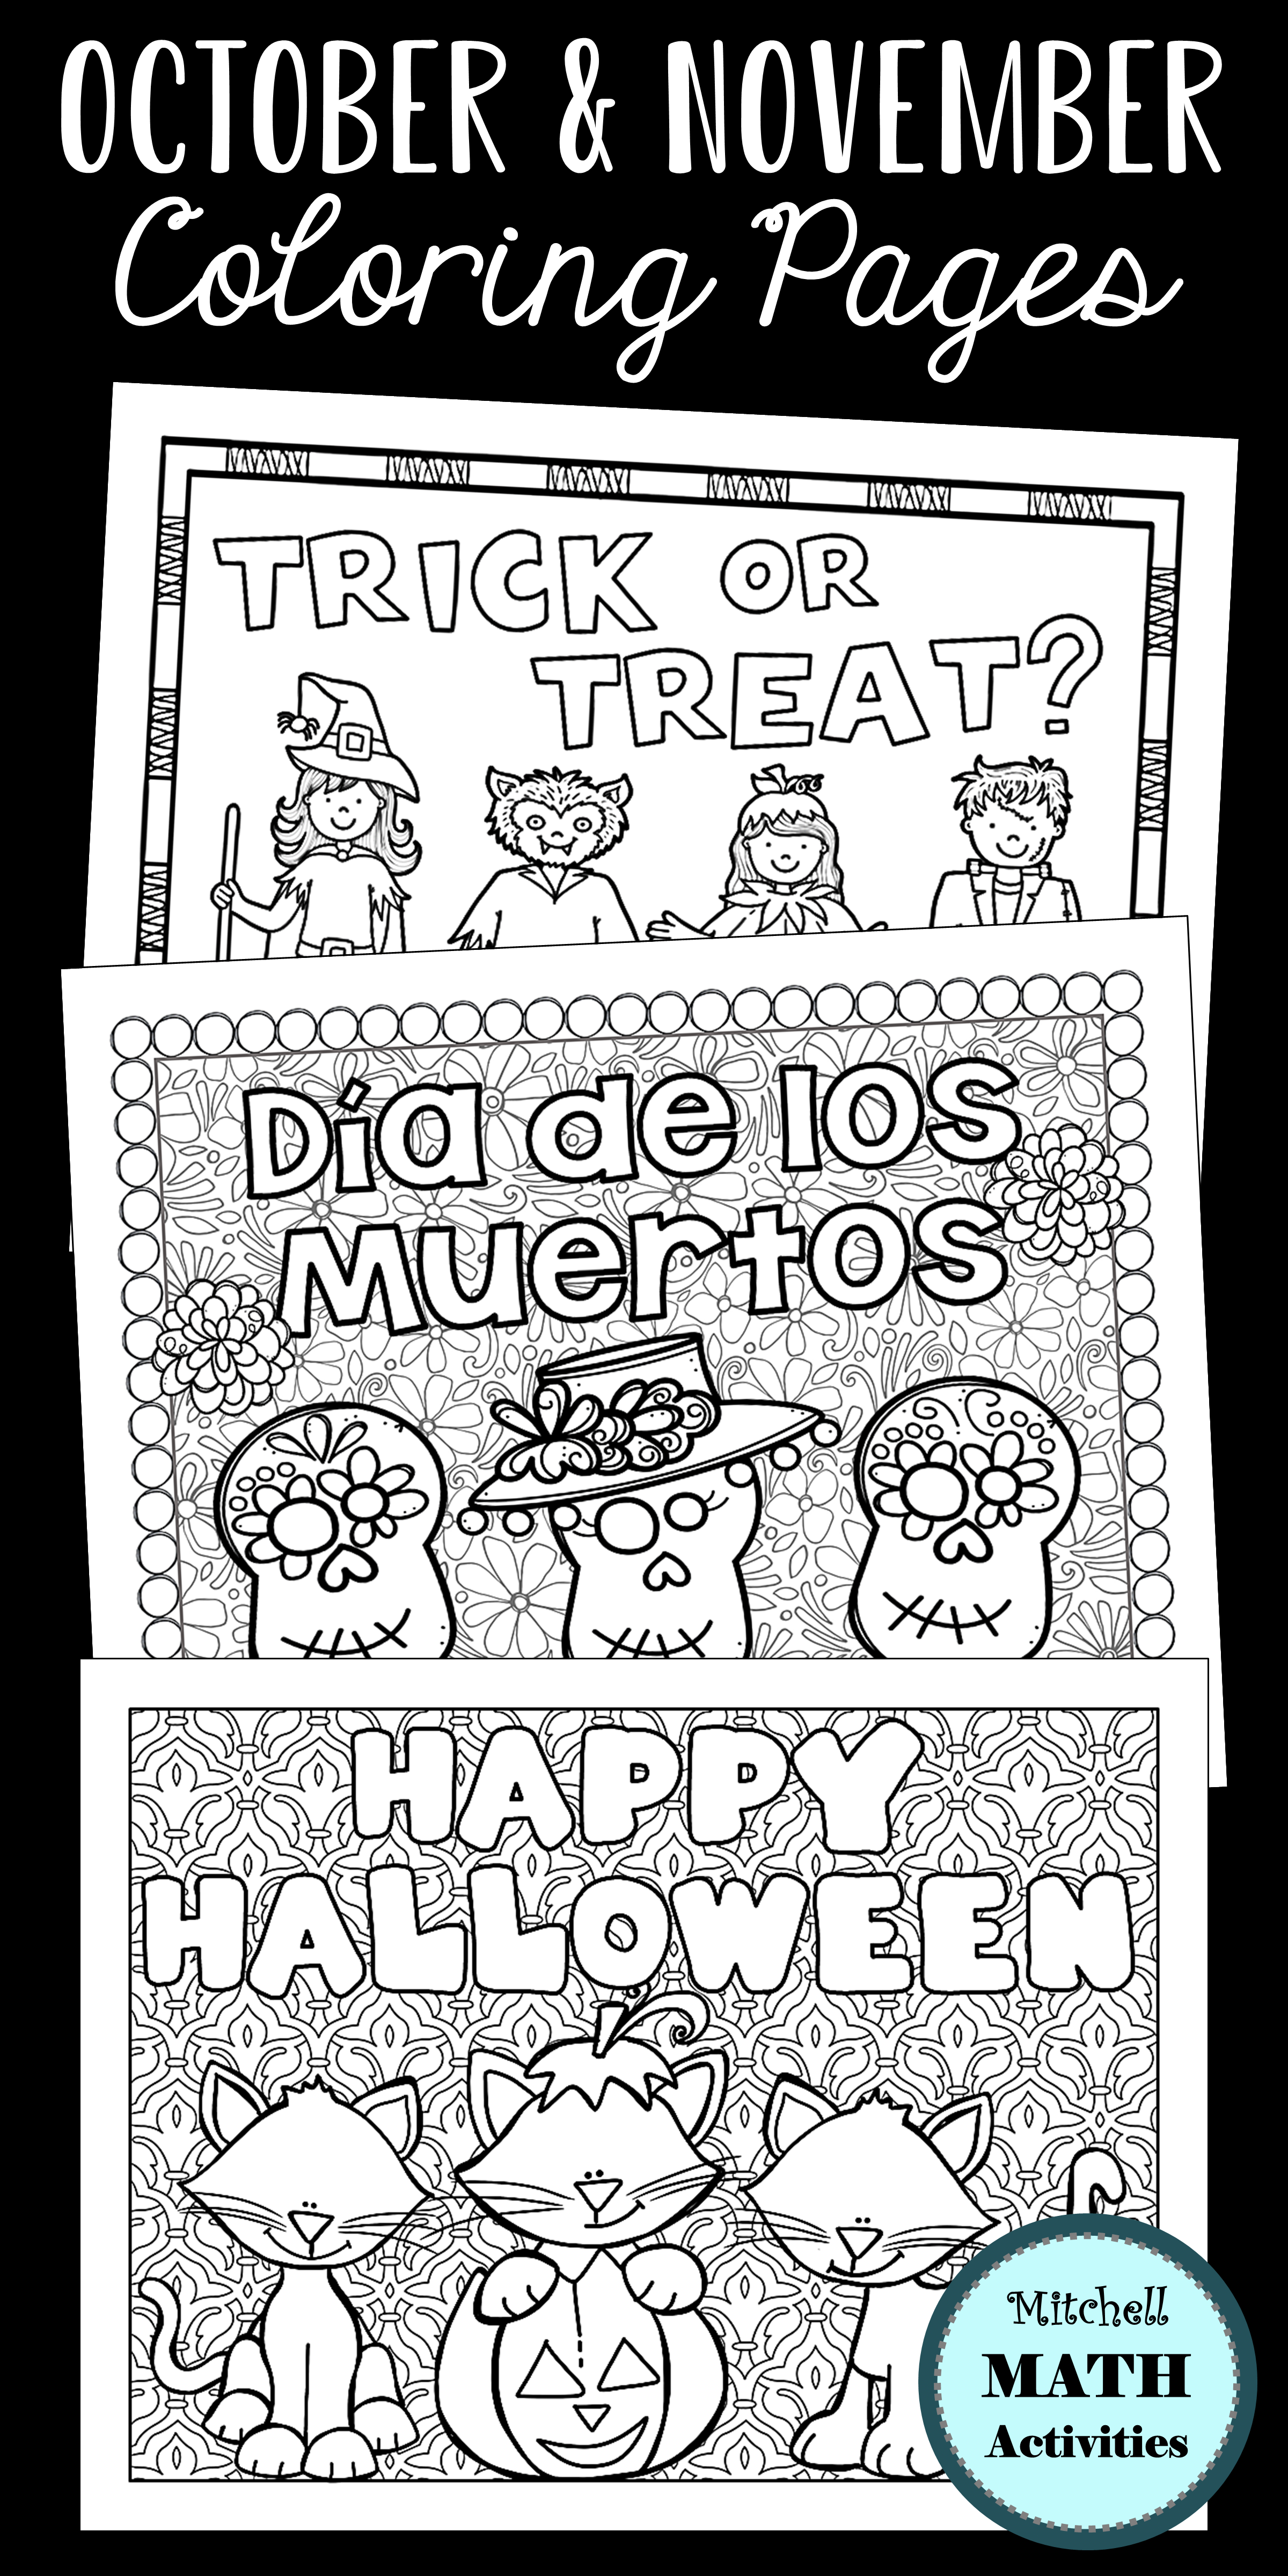 Set Of 12 Coloring Pages For October And November Designed To Complement The Fall Season Halloween Dia De Los Muertos V Math Activities Coloring Pages Math [ 4800 x 2400 Pixel ]